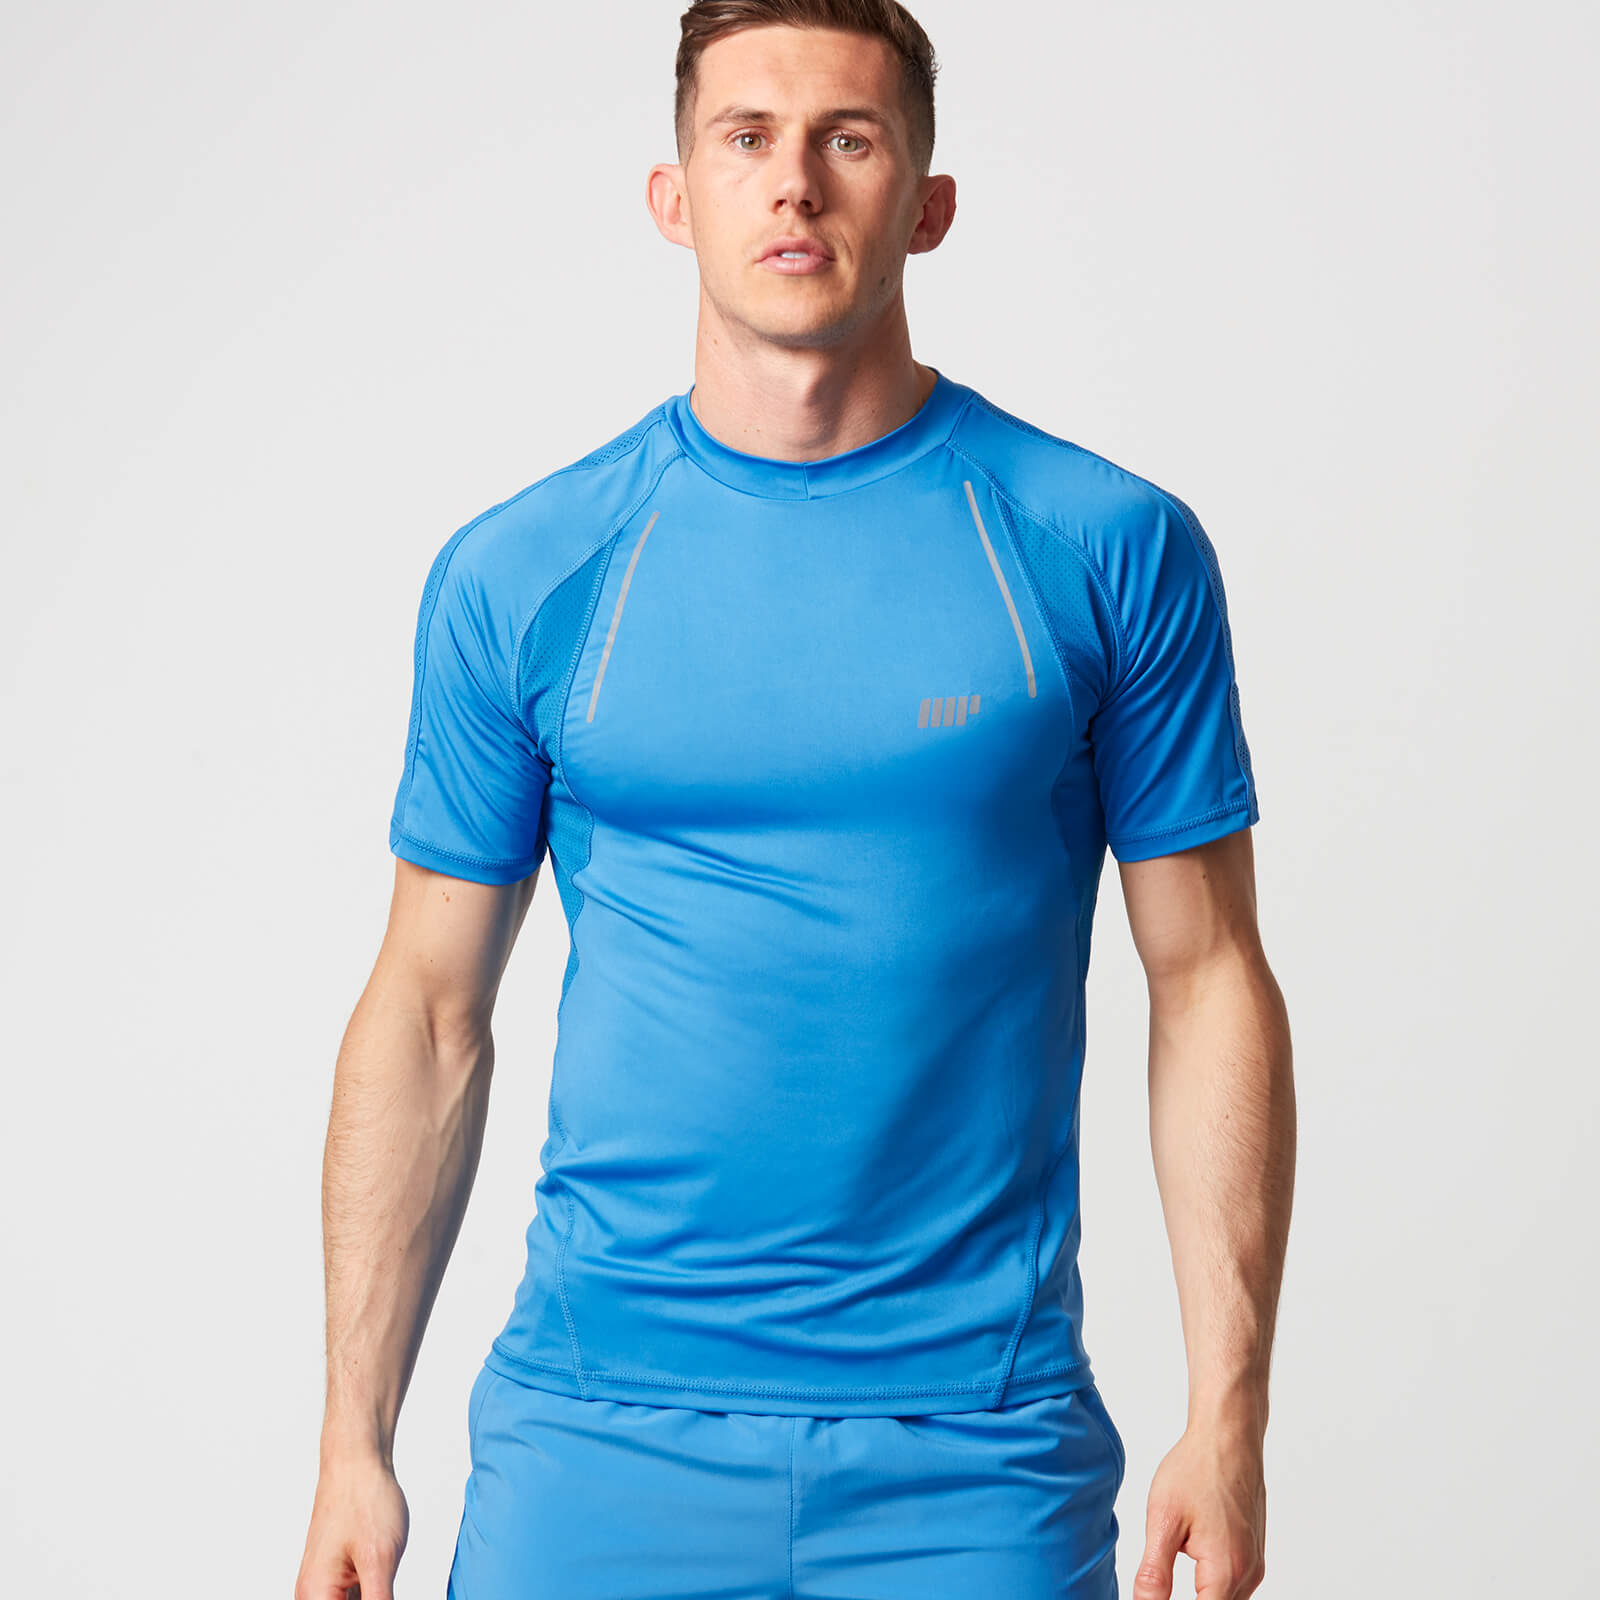 Myprotein Strike Football T-Shirt - Light Blue - XL